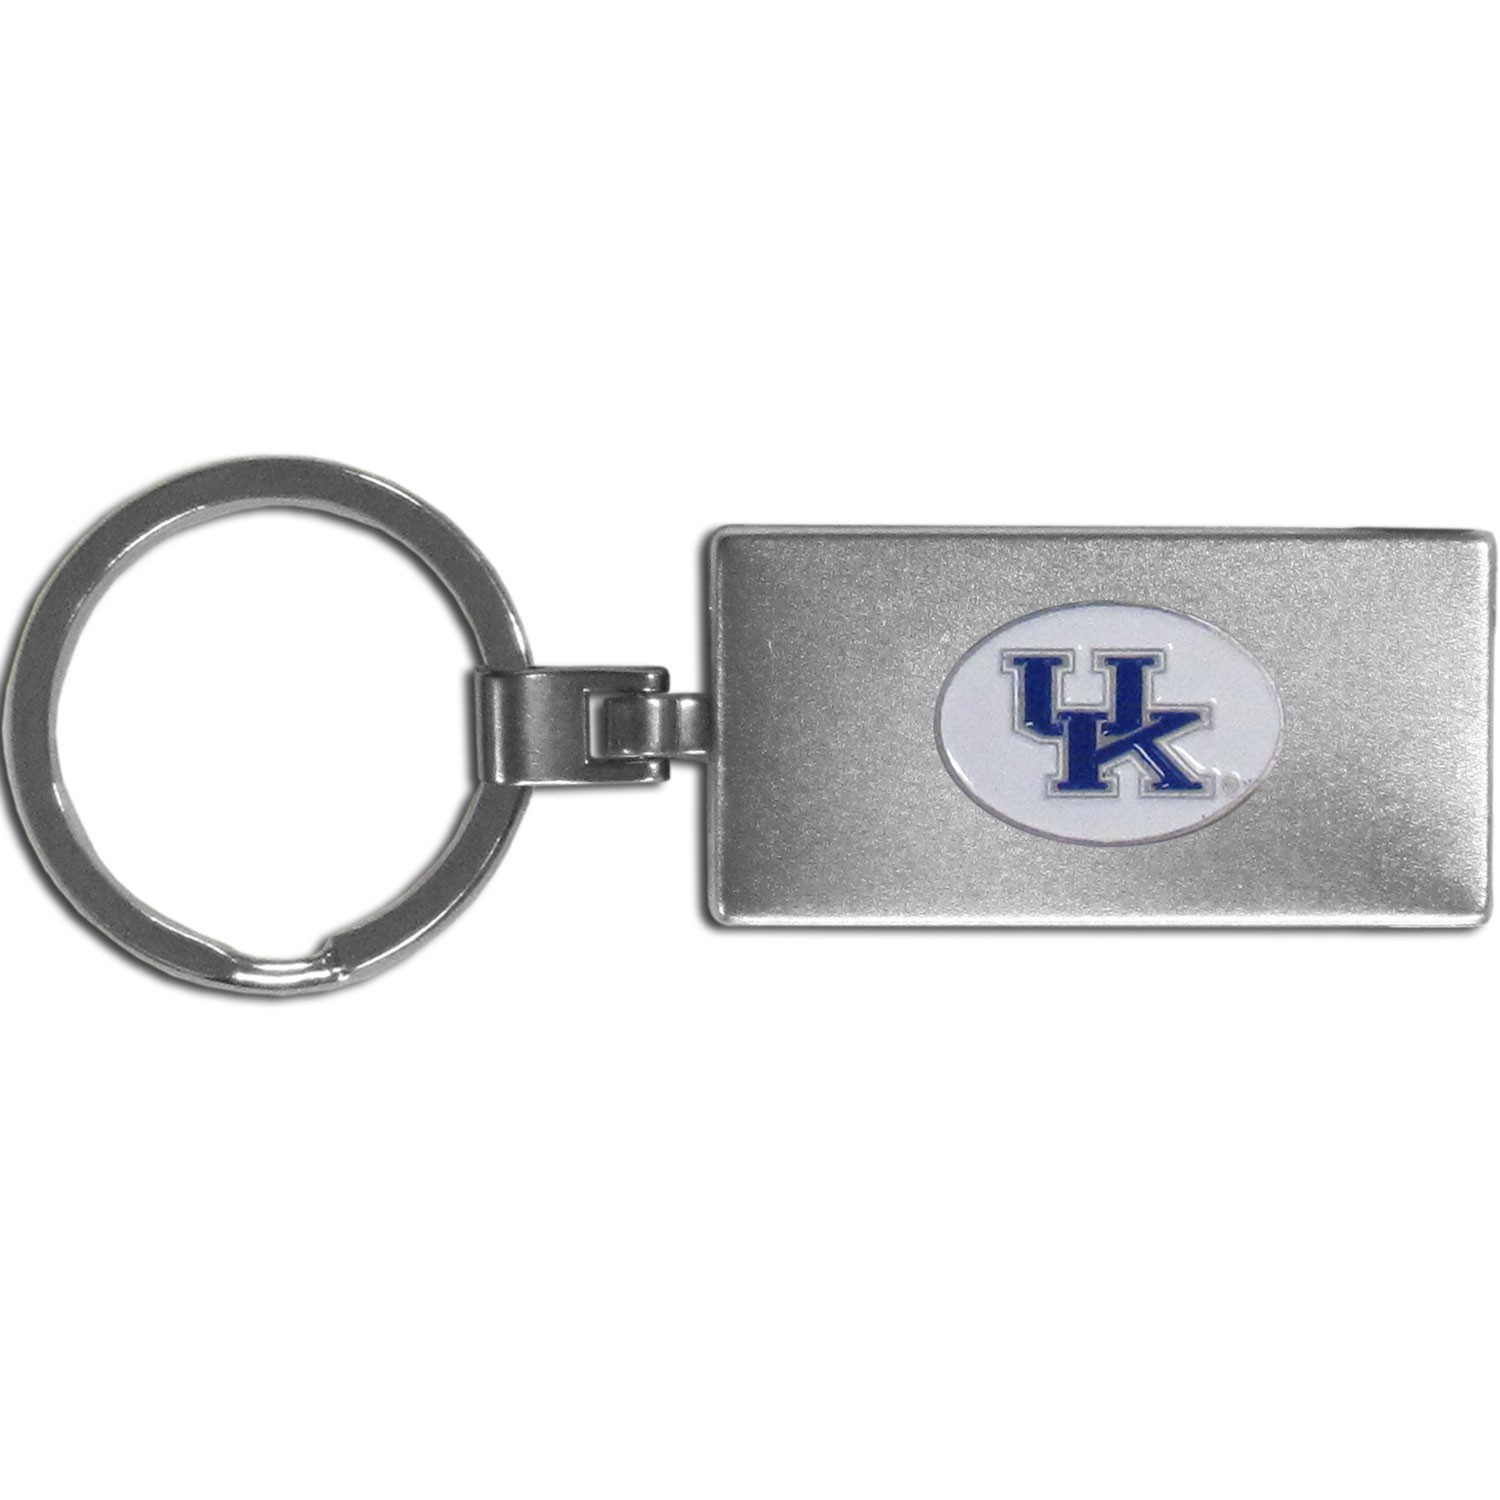 Kentucky Wildcats Multi-tool Key Chain - Be the hero at the tailgate, camping, or on a Friday night with your Kentucky Wildcats Multi-Tool Keychain which comes complete with bottle opener, scissors, knife, nail file and screw driver. Be it opening a package or a beverage Siskiyou's Multi-Tool Keychain goes wherever your keys do. The keychain hangs at 4 inches long when closed.